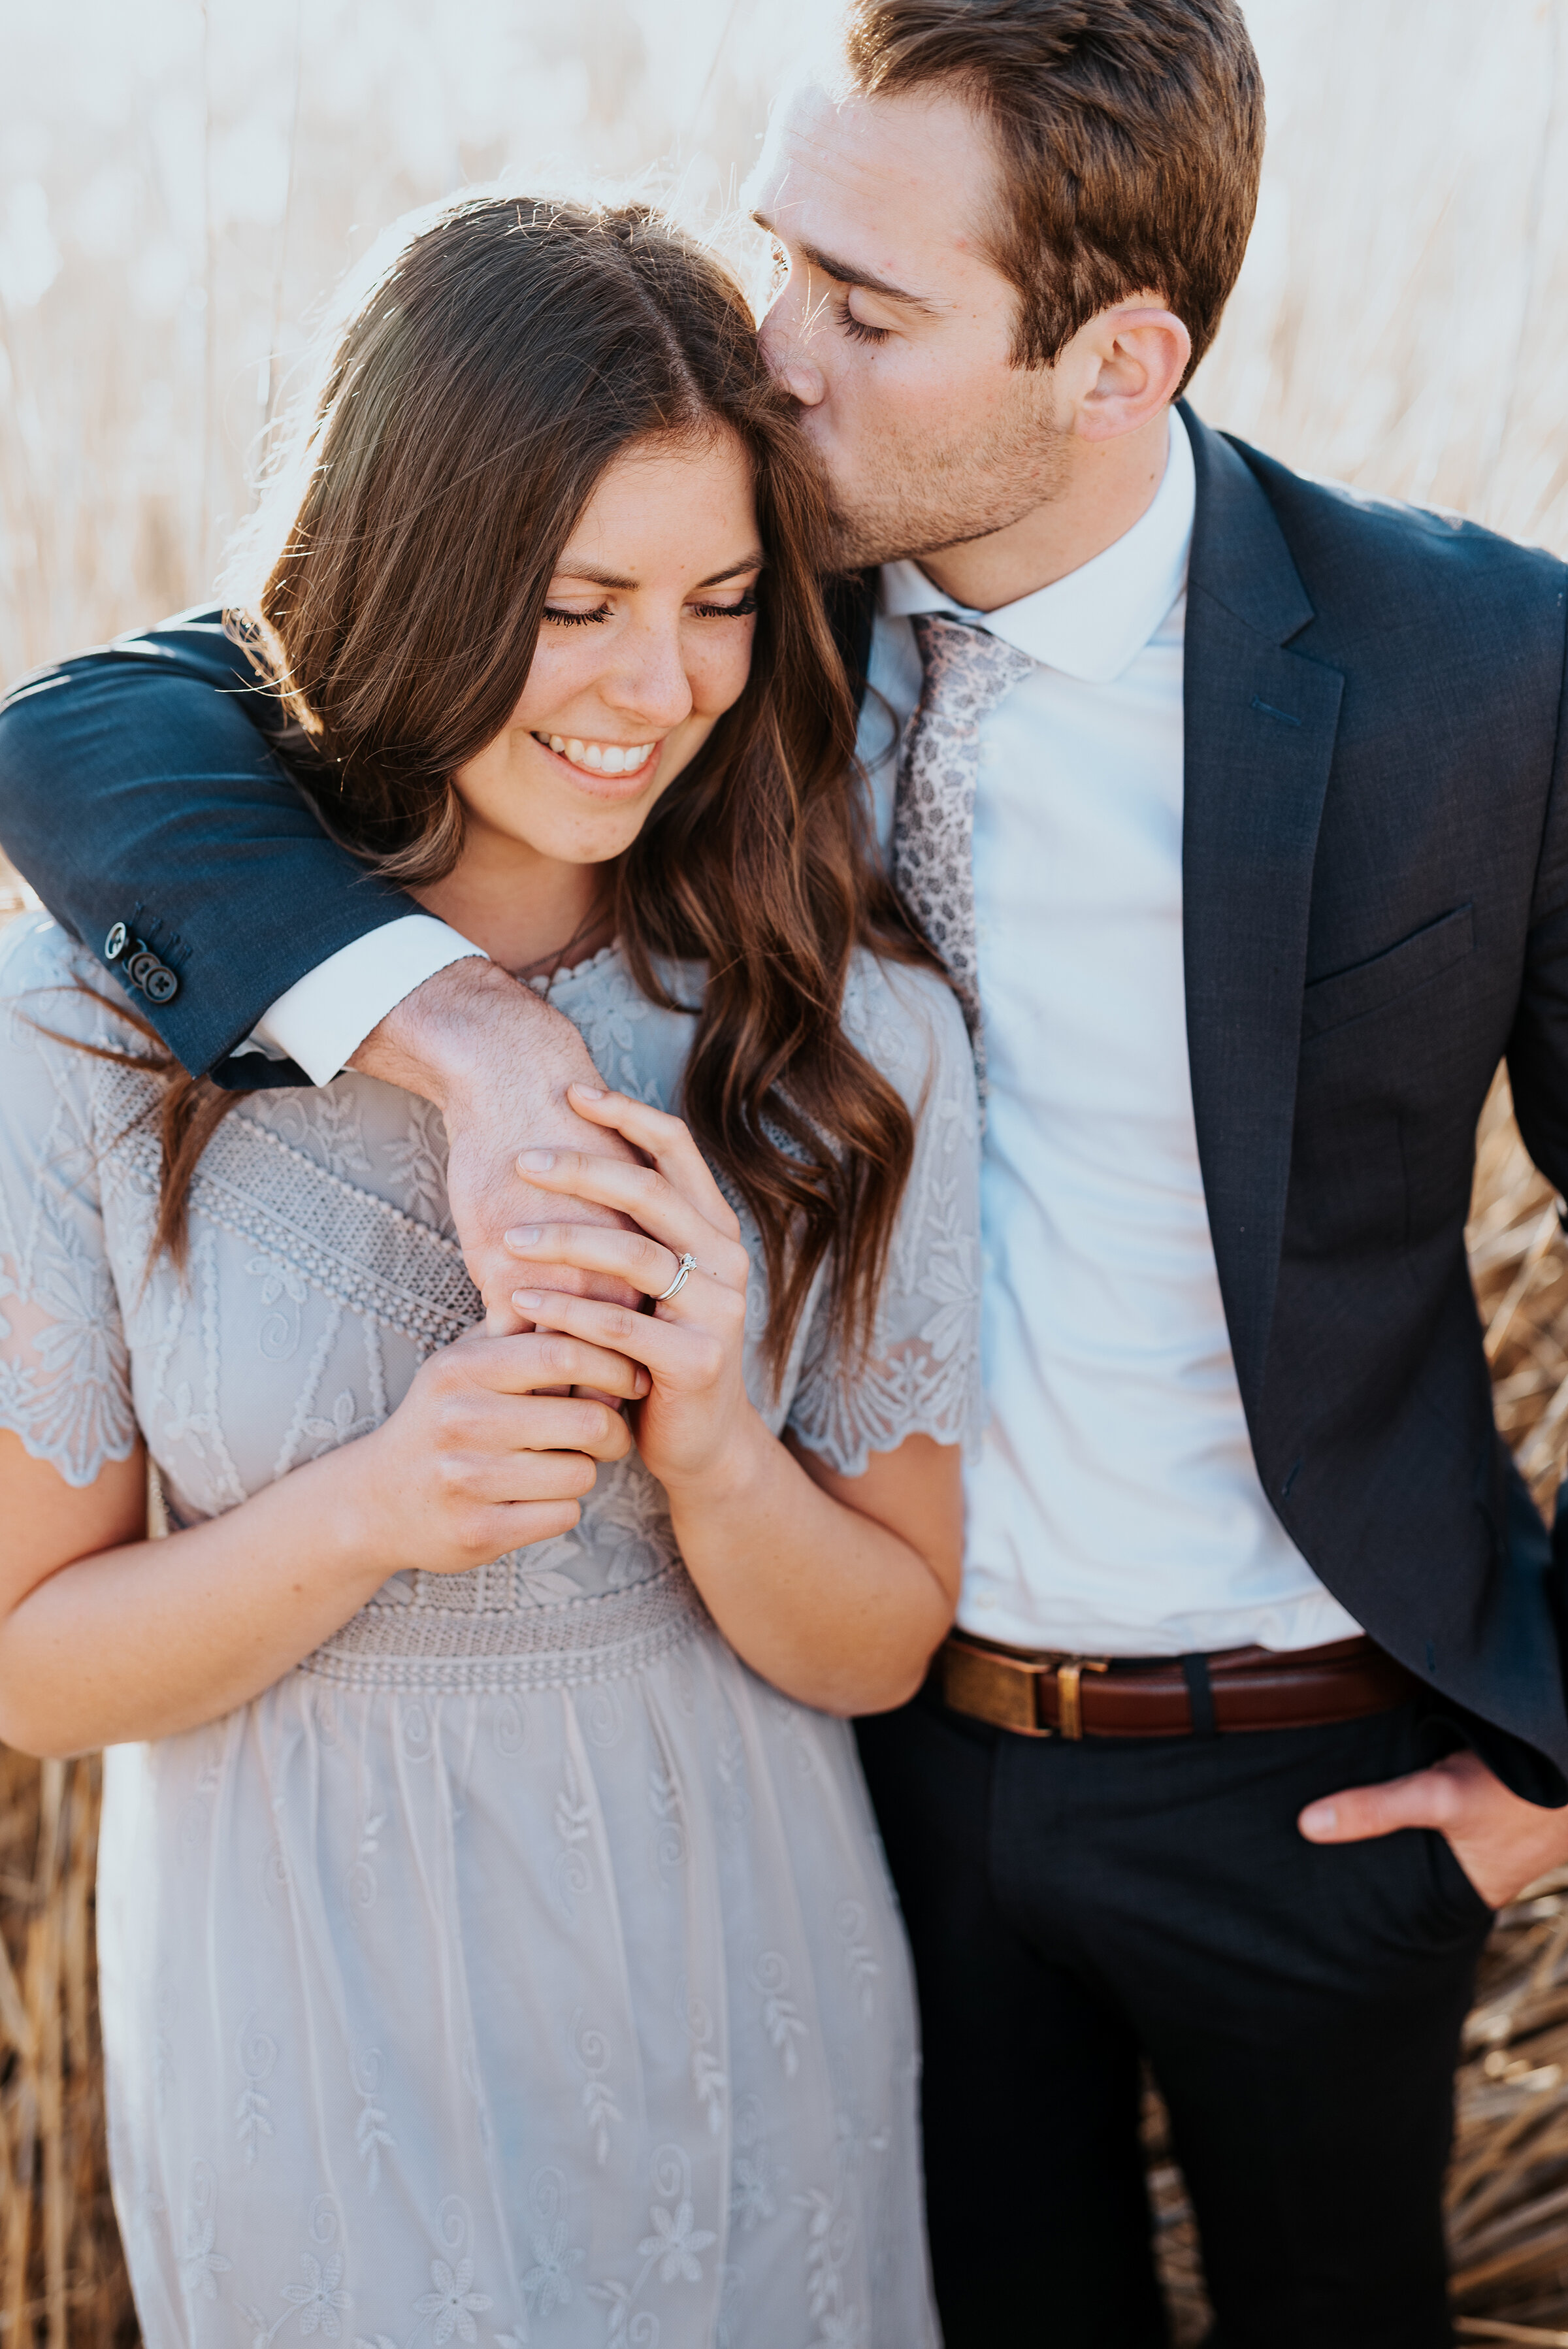 Man kisses his fiancé' head while she looks stunning in a gray lace dress during their engagement photoshoot. Kissing couple during their engagement photoshoot magna utah gray aesthetic outdoor photoshoot Kristi Alyse photography best utah photographer engagement session ideas #engagementideas #outdoorphotoshoot #grayaesthetic #kissinginatree #capturingmemories #kristialysephotography #utahengagements